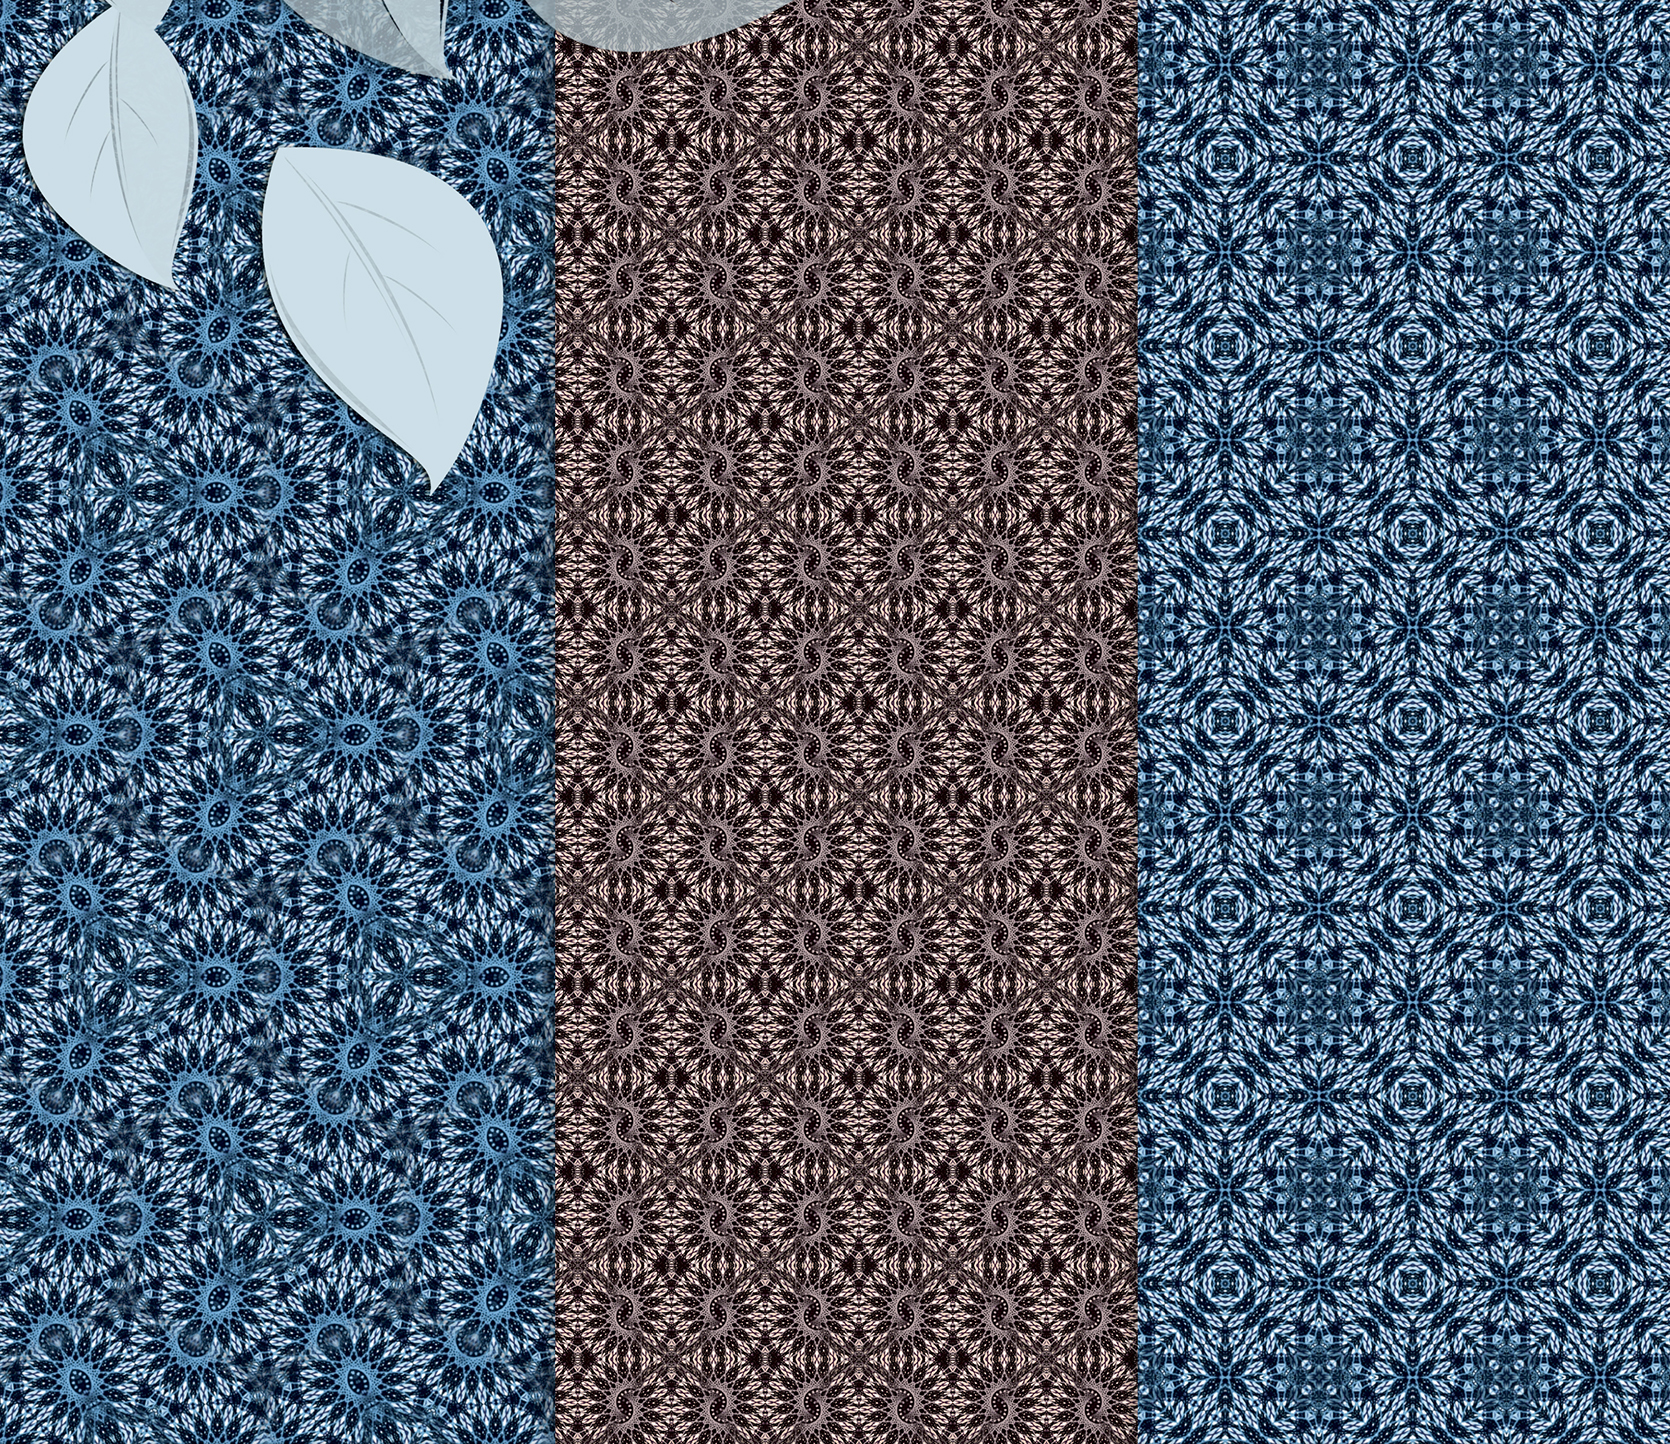 Beige and blue abstract, knitted patterns, Scrapbook Paper example image 4